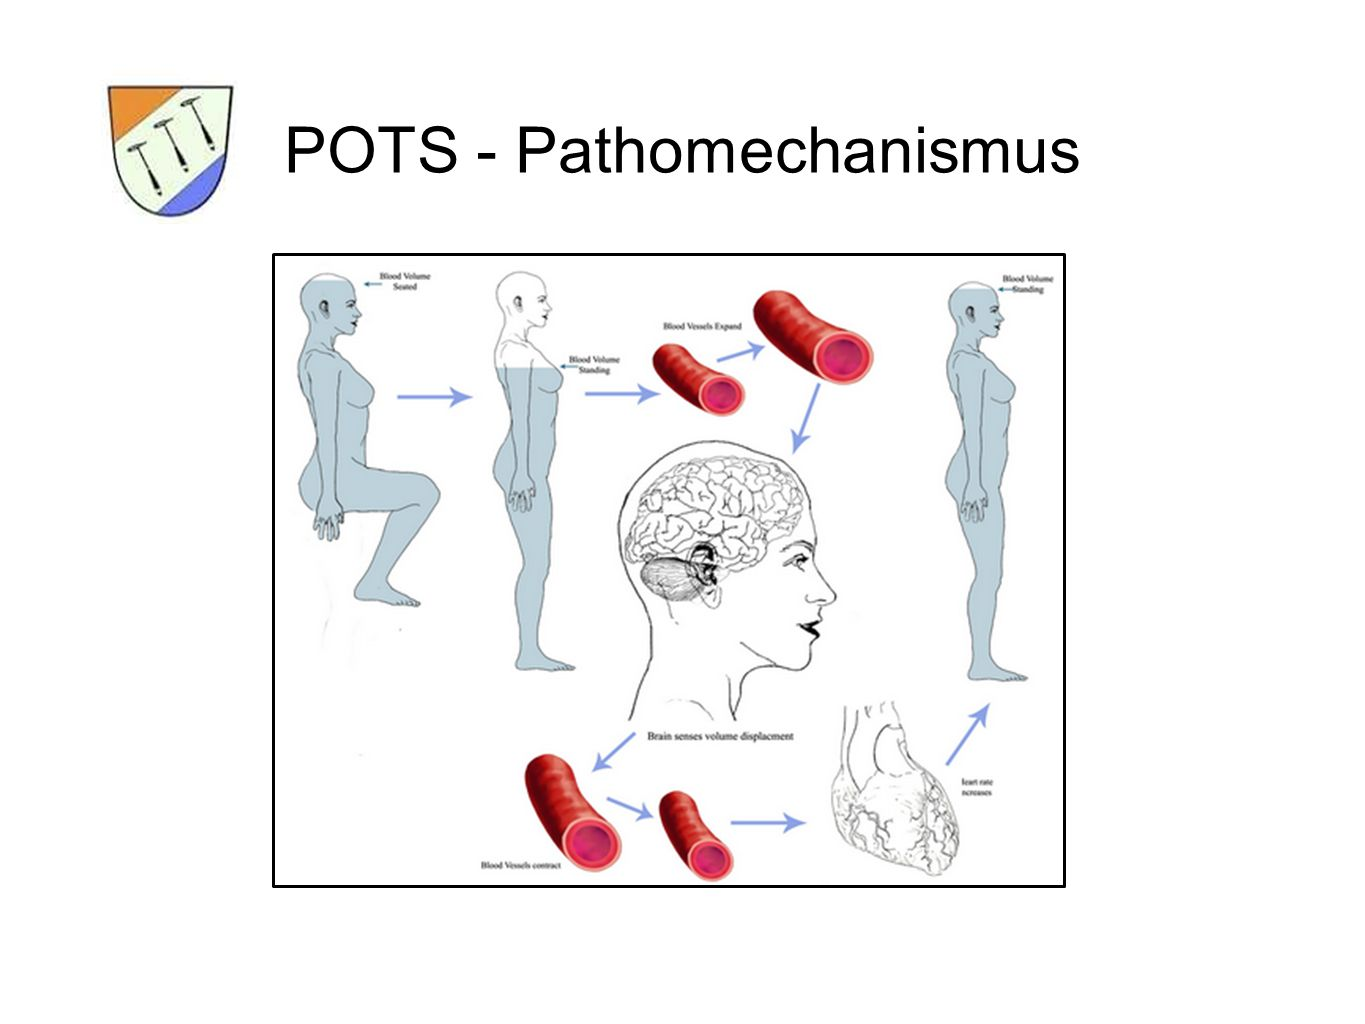 POTS - Pathomechanismus